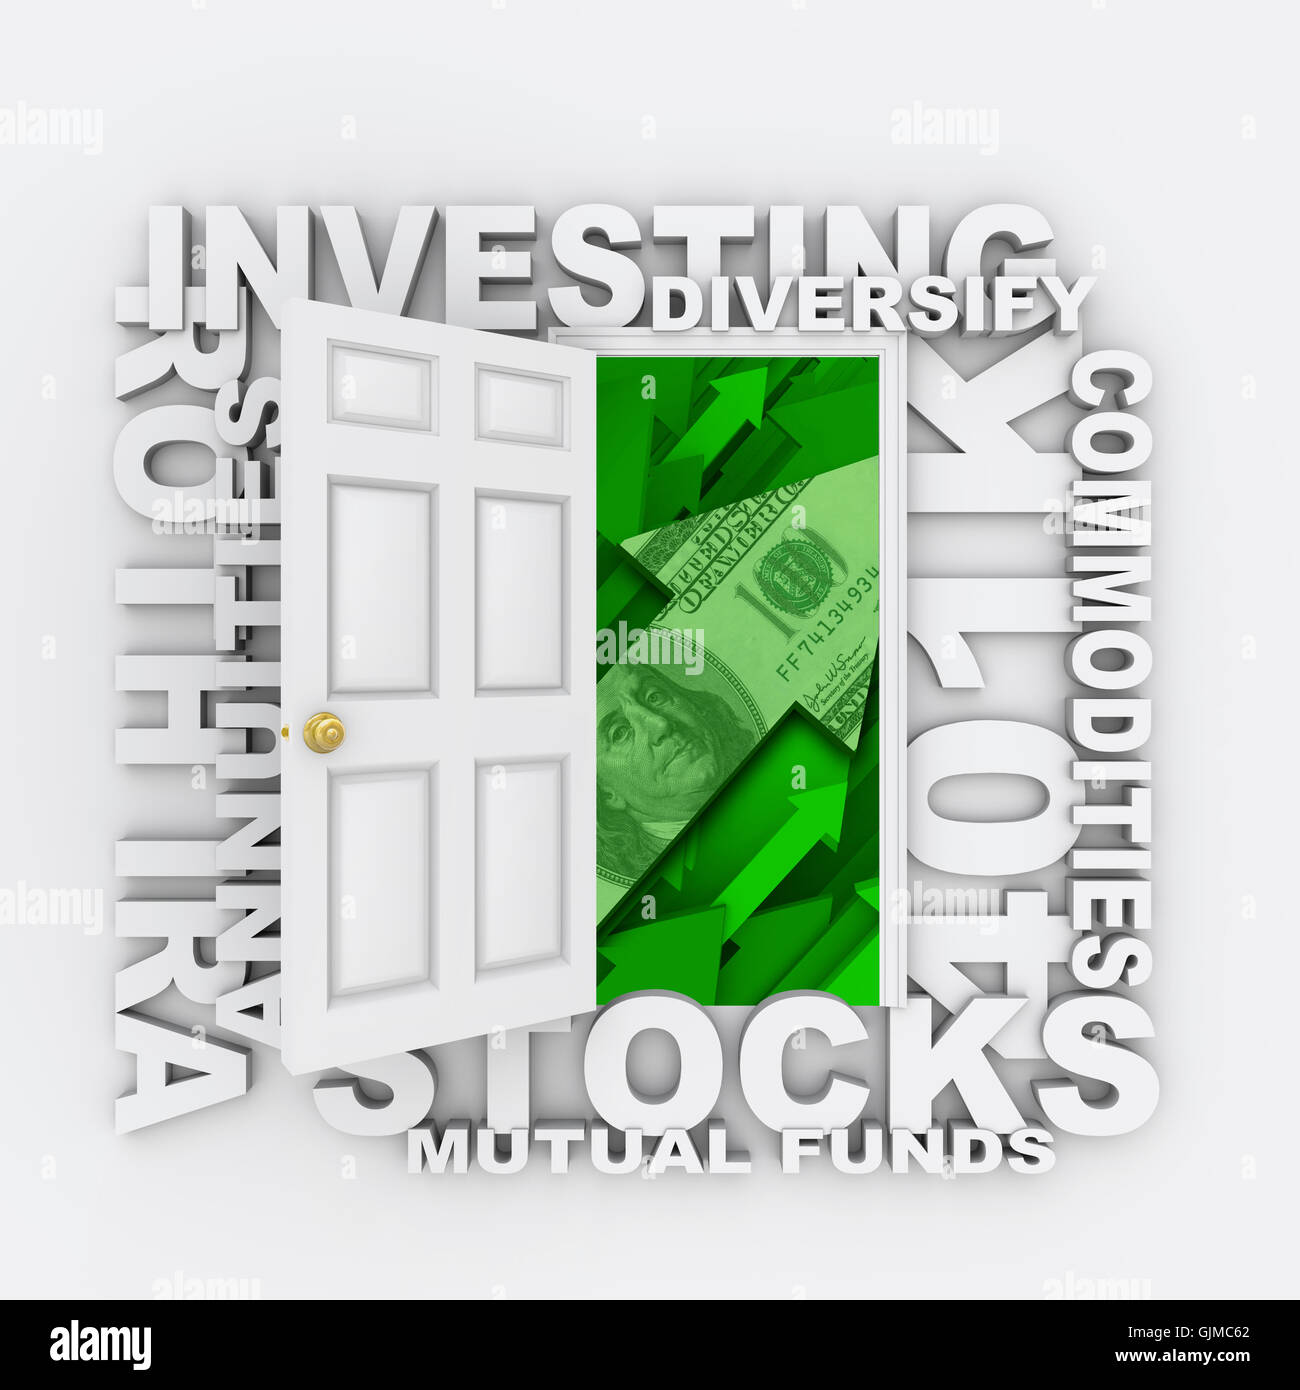 Investments - Open Door to Diversified Investing Growth - Stock Image